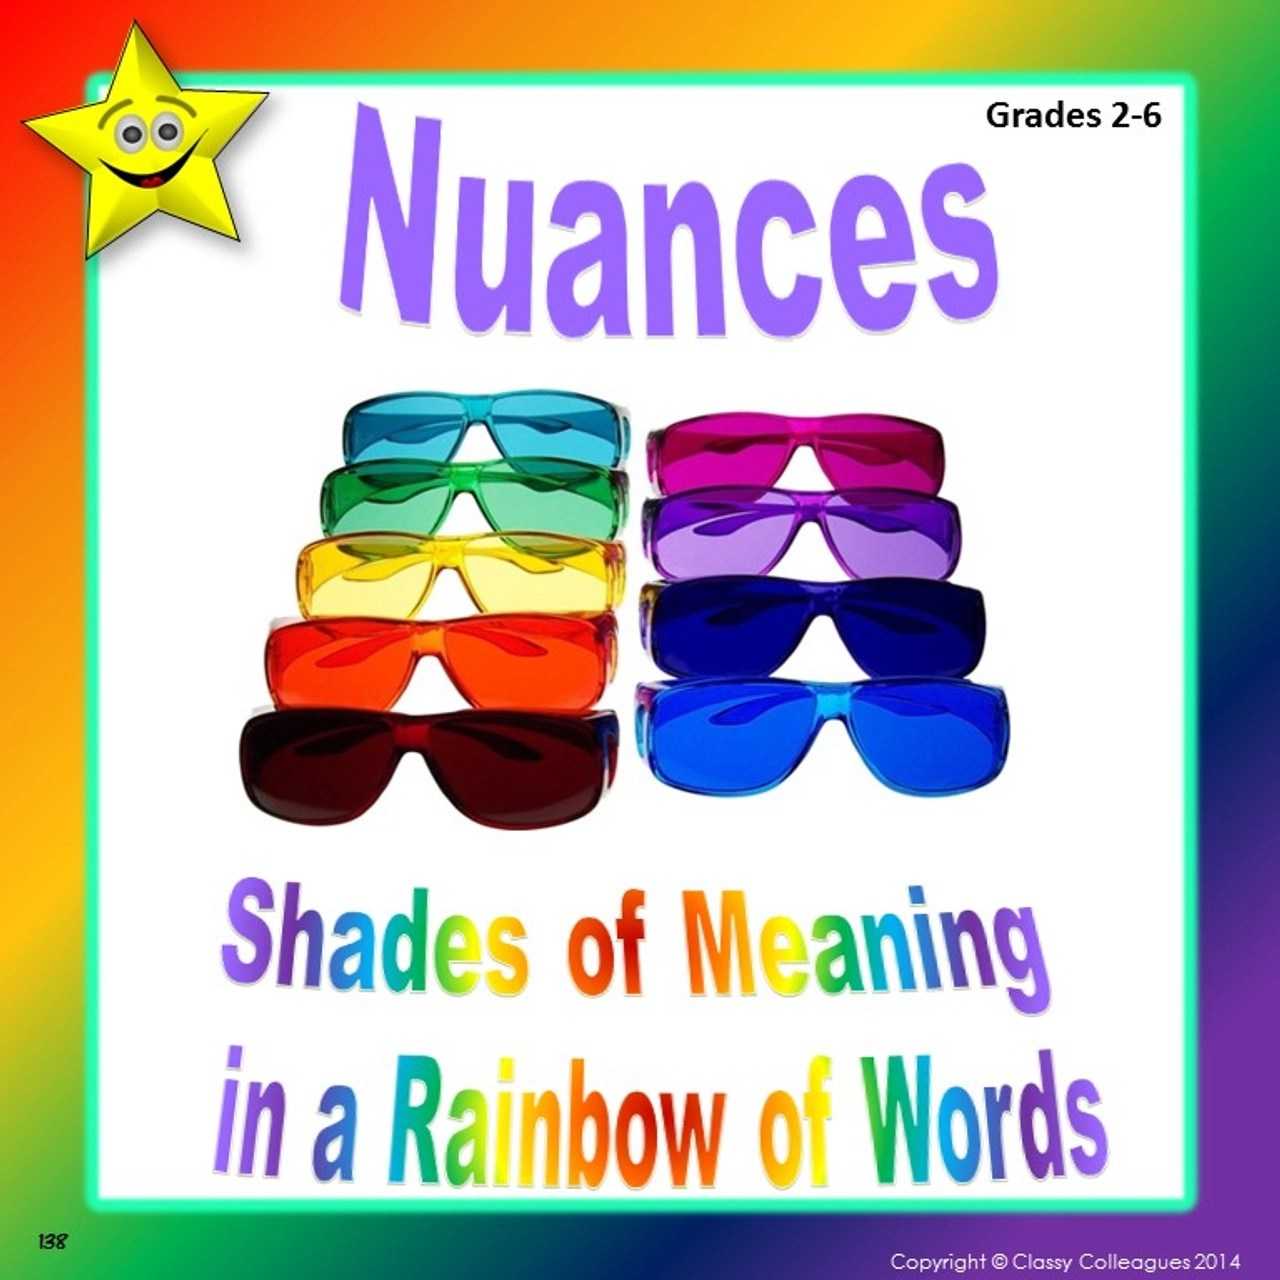 hight resolution of Nuances - Shades of Meaning in a Rainbow of Words - Amped Up Learning